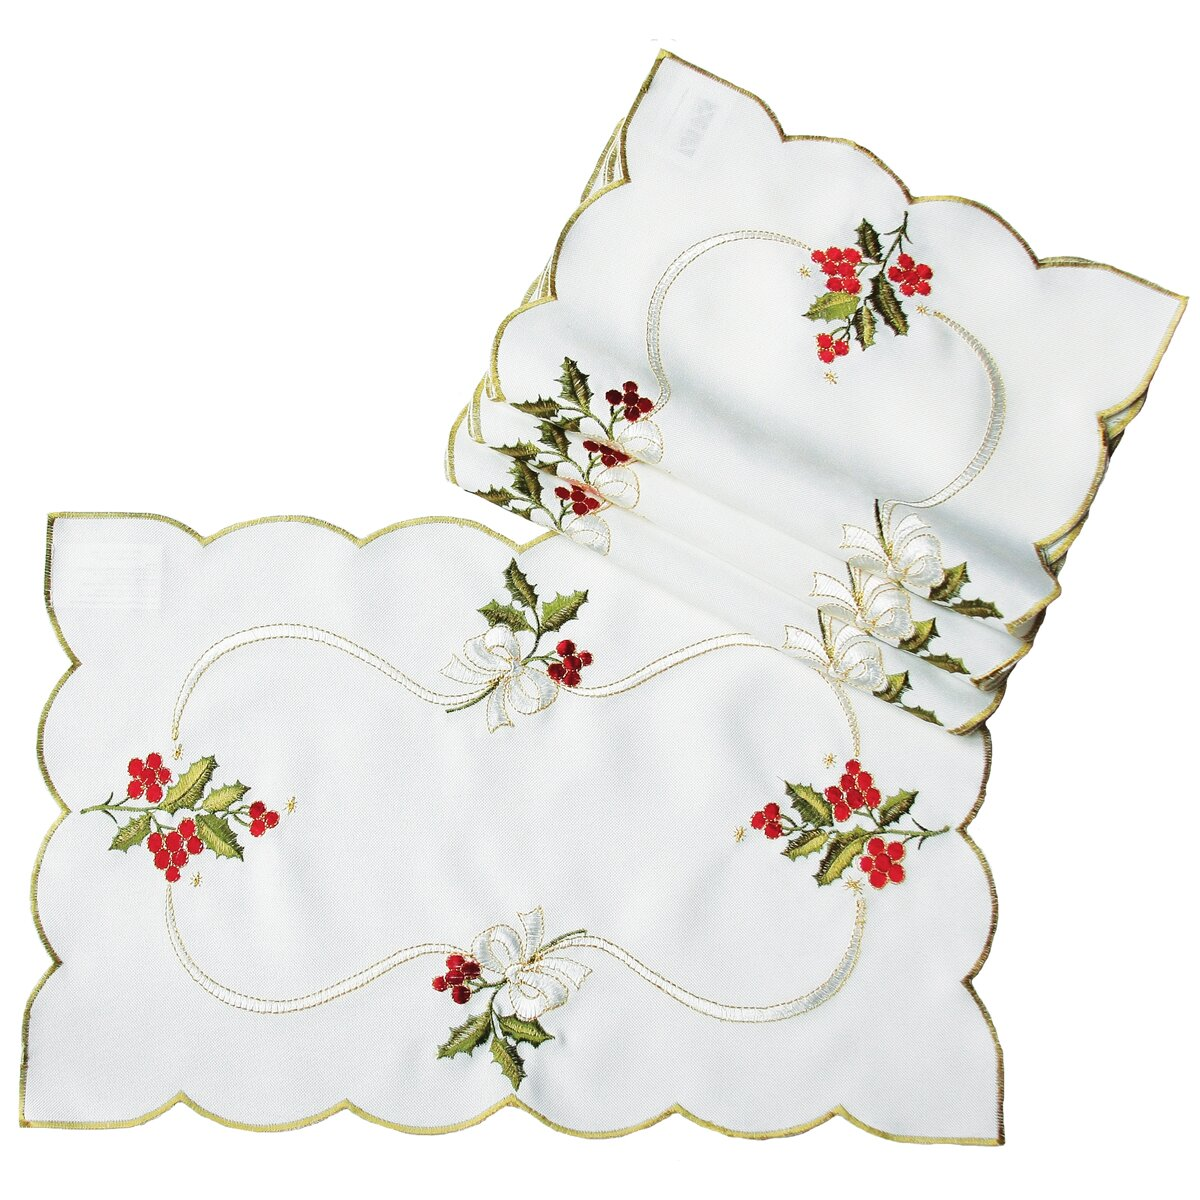 Xia Home Fashions Holly Berry Embroidered Placemat Wayfair : Xia Home Fashions Holly Berry Embroidered Placemat XD134011218 from www.wayfair.com size 1200 x 1200 jpeg 319kB